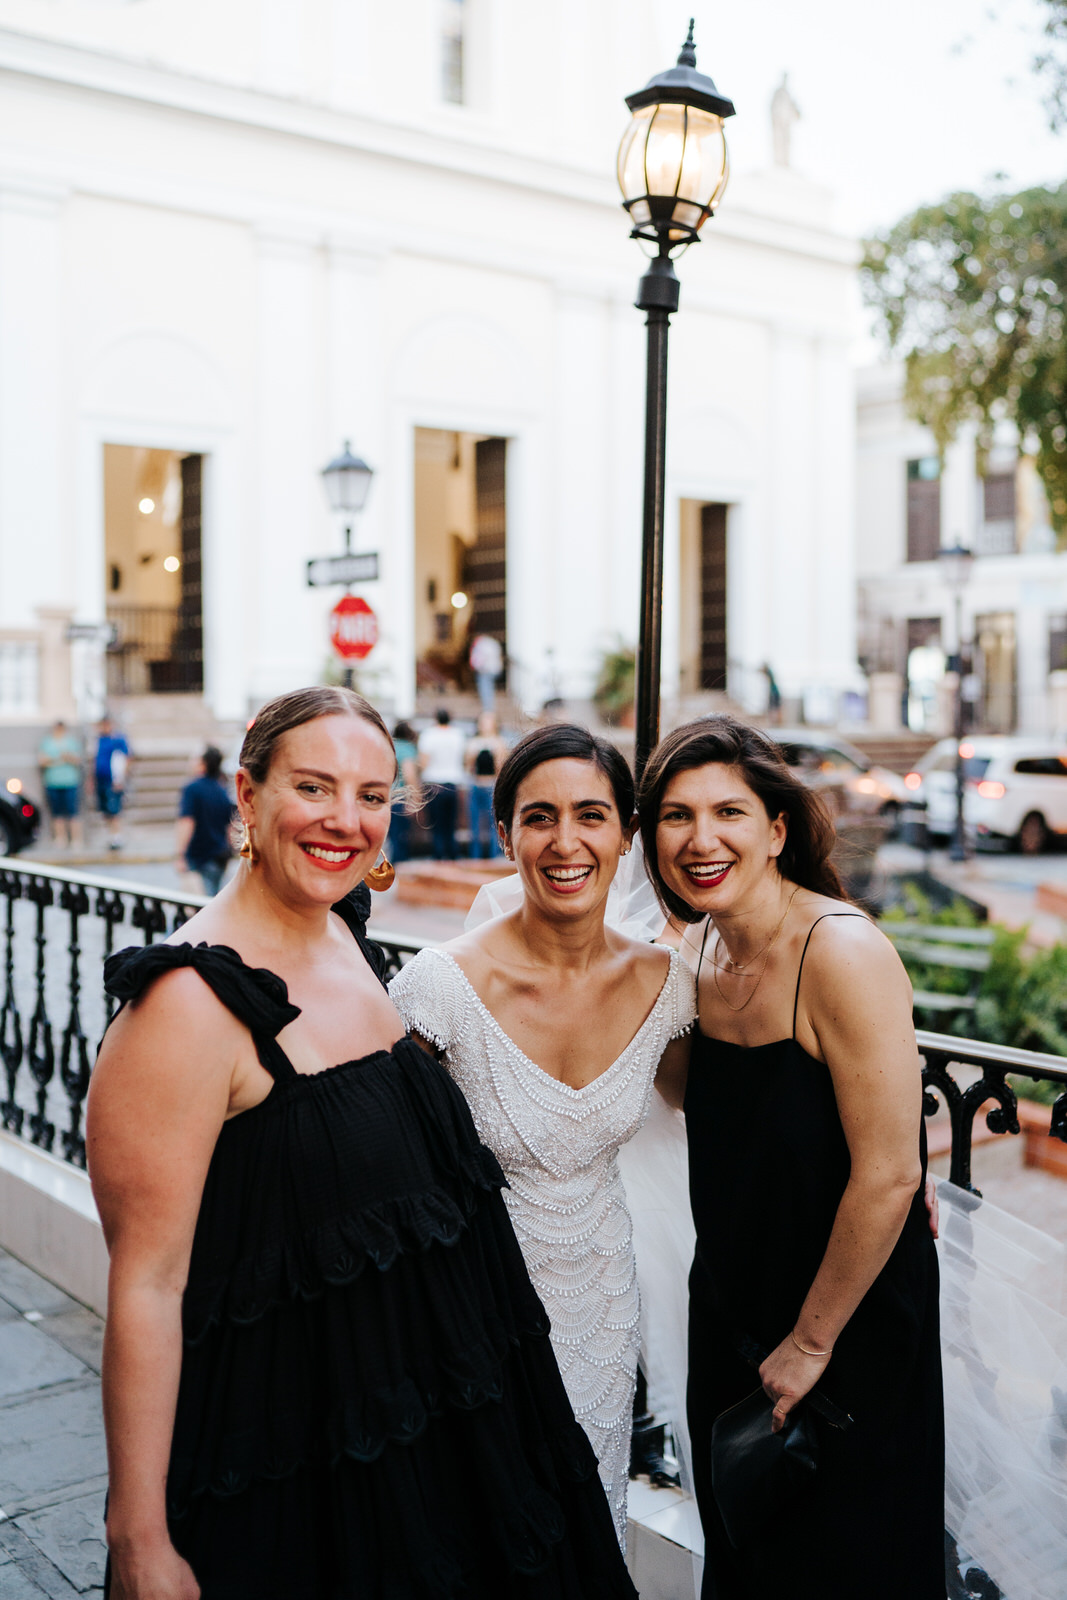 Group photograph of bride and two of her friends posing for a photo and looking at the camera